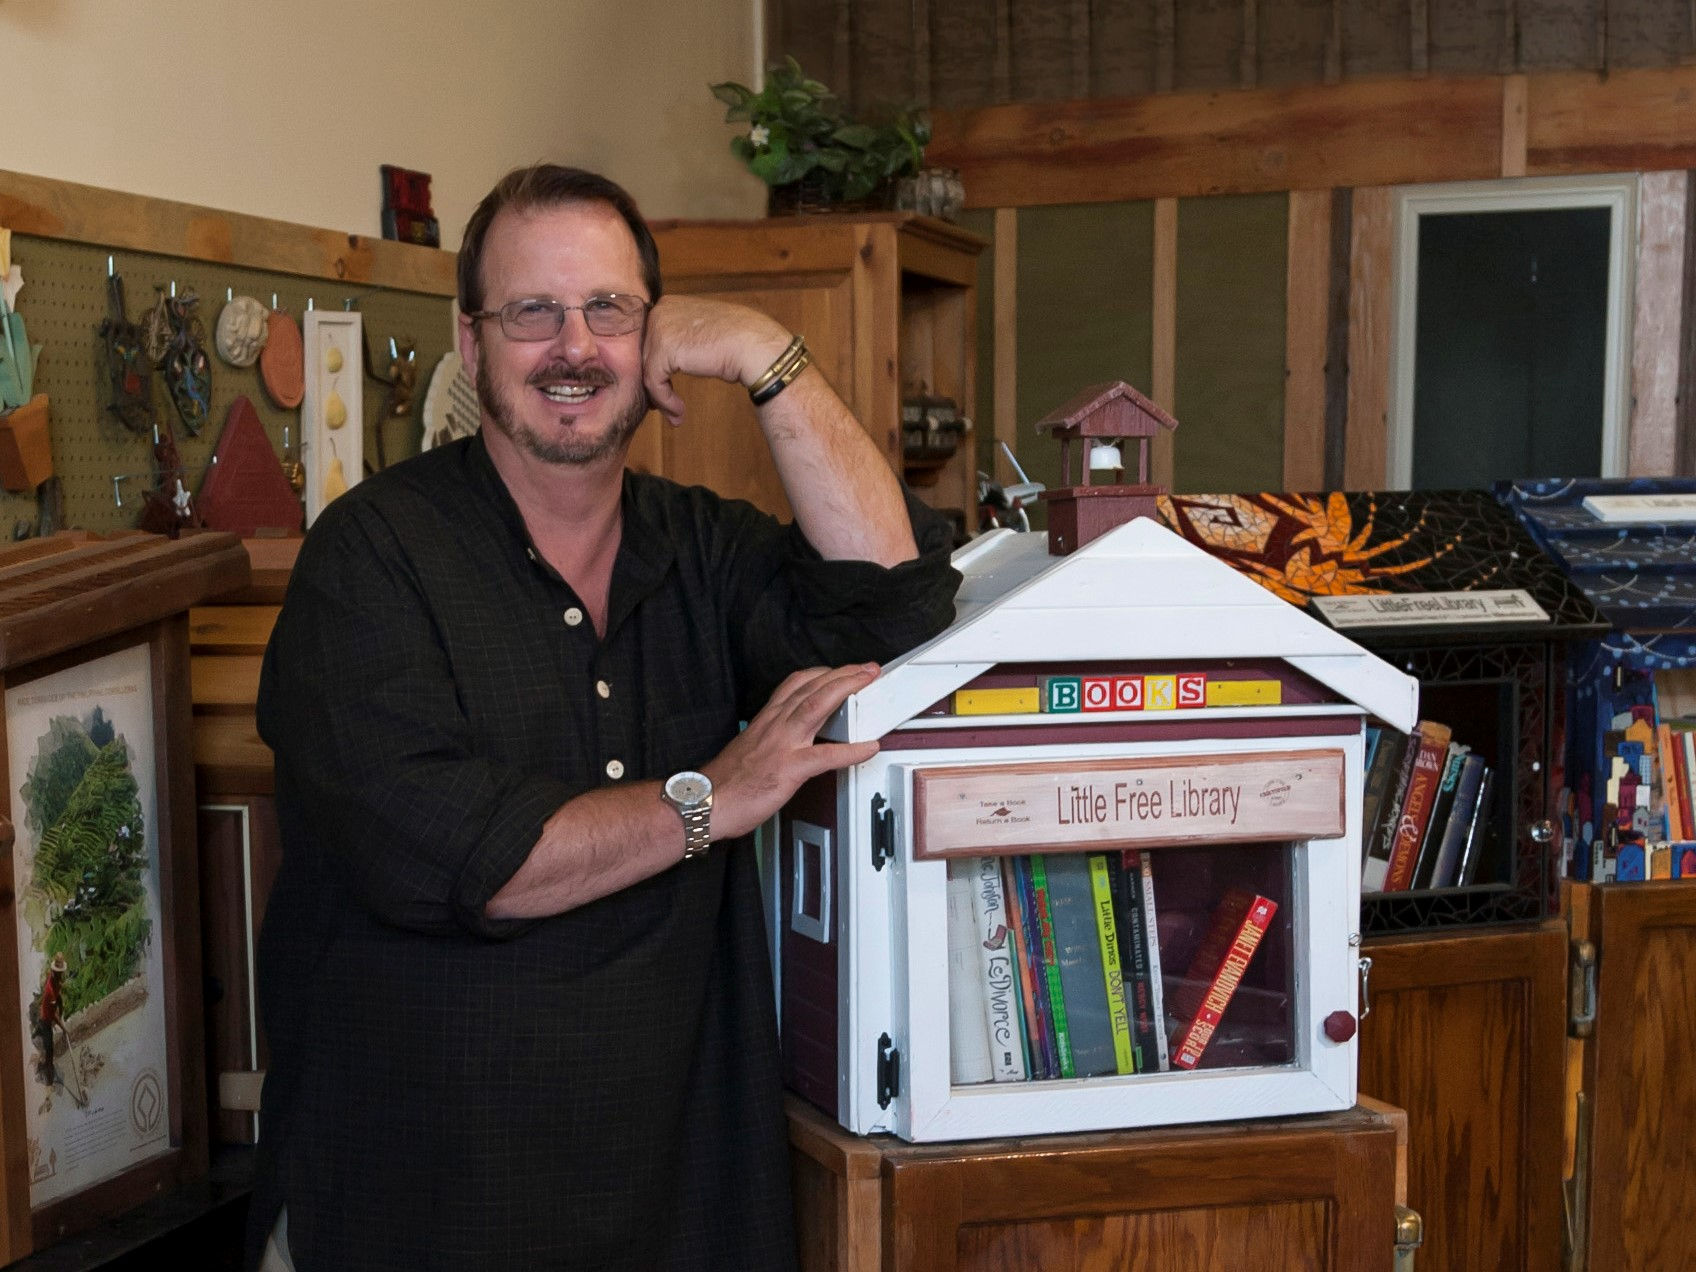 Photo: Little Free Library Founder Todd Bol